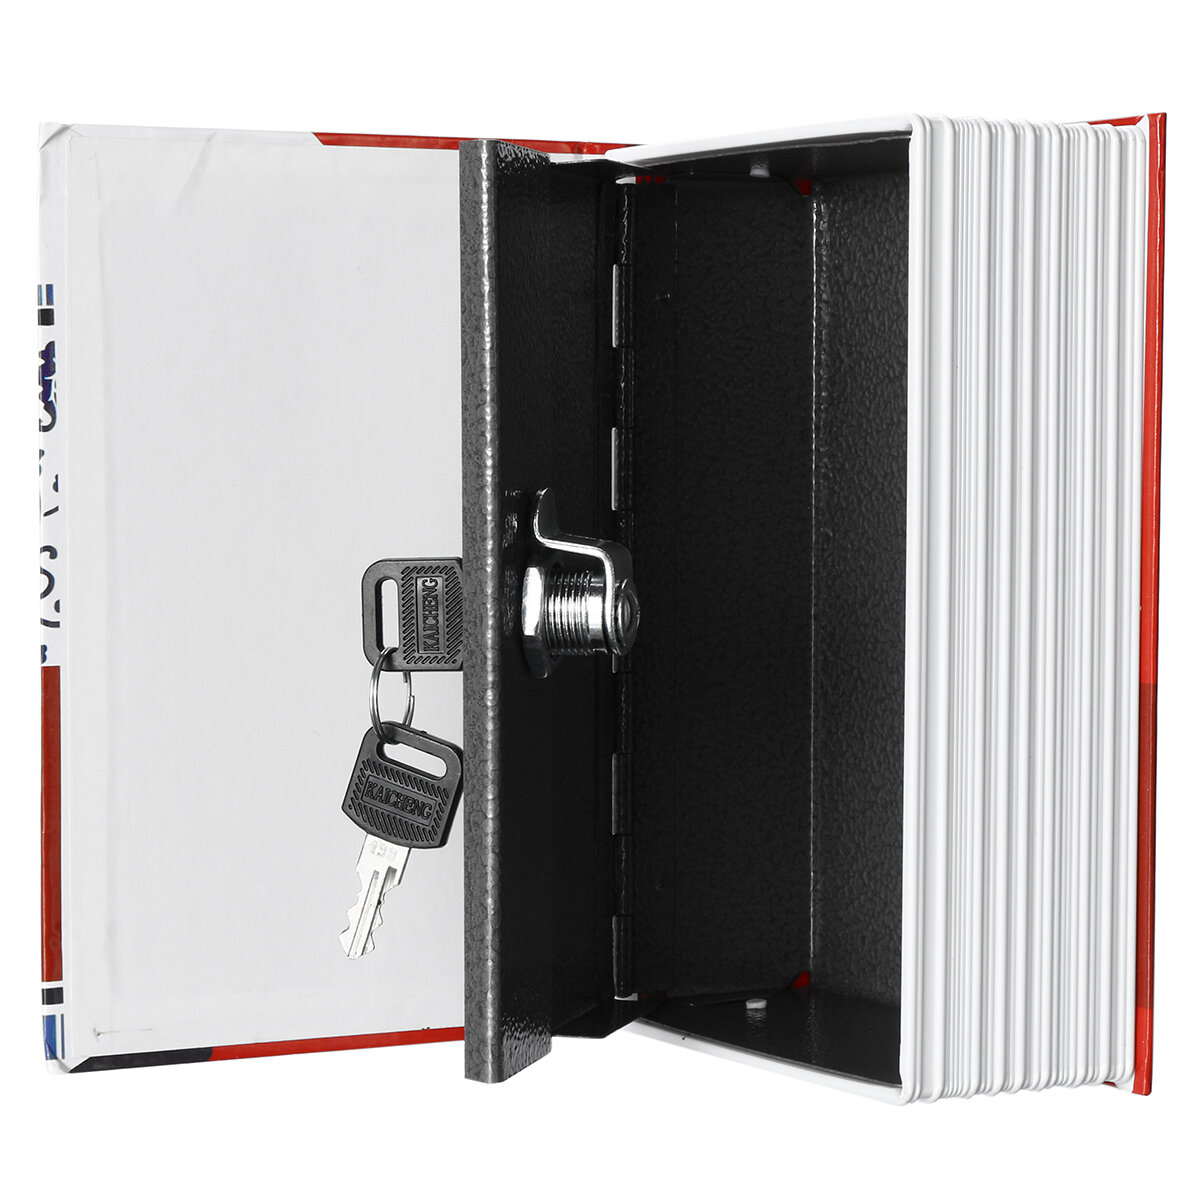 UK Home Security Dictionary Book Safe Storage Password Lock Box for Cash Money